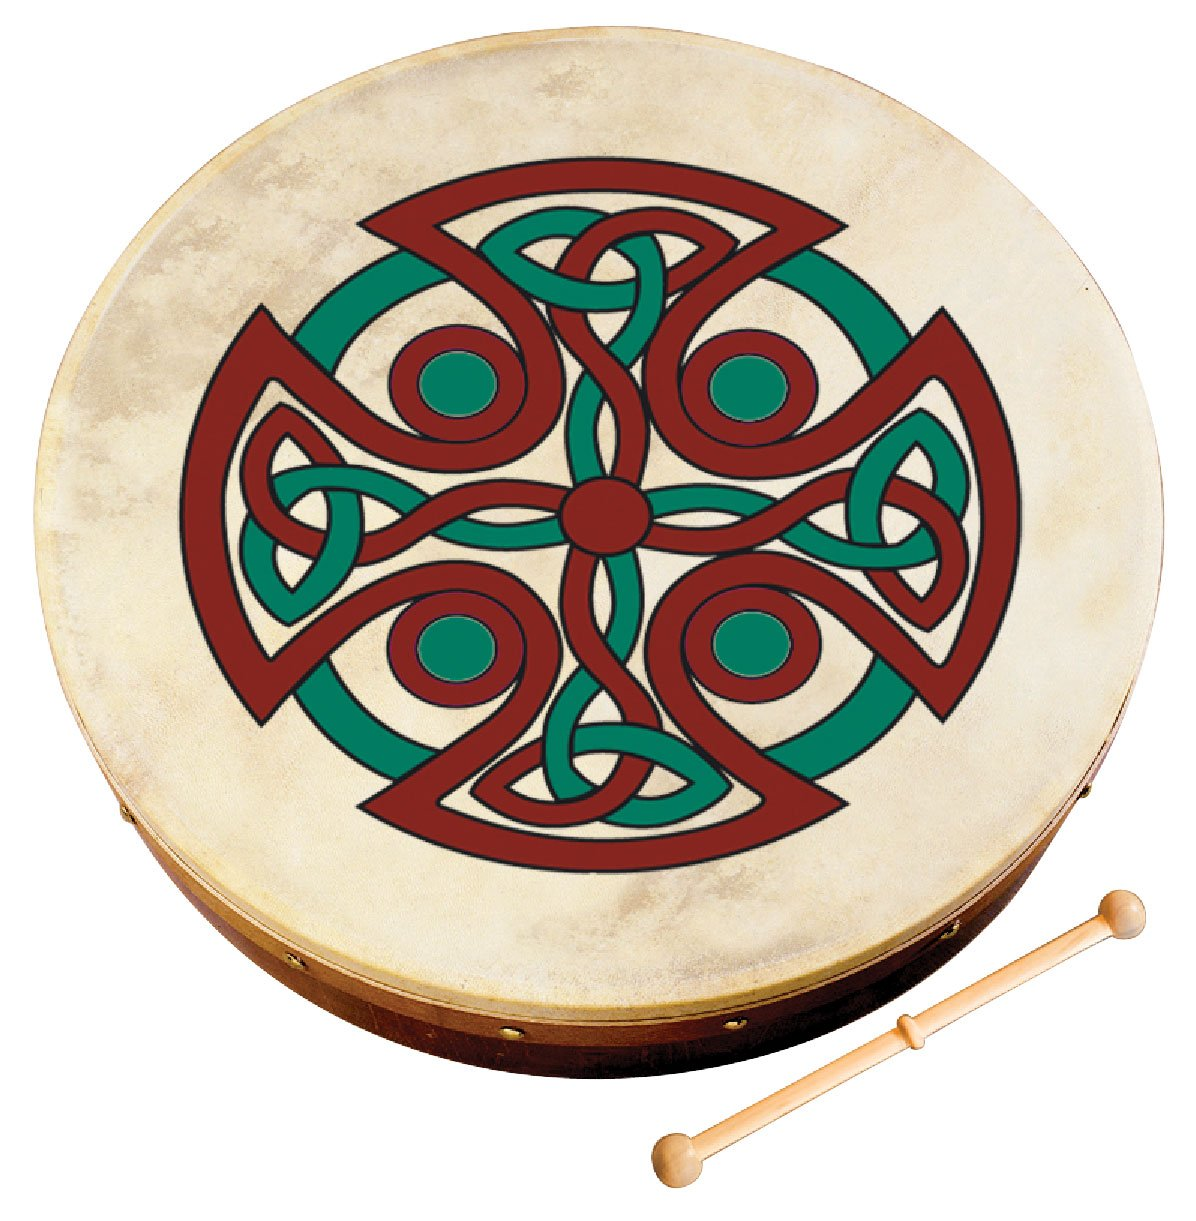 Waltons Bodhrán 8'' (Carew Cross) - Handcrafted Irish Instrument - Crisp & Musical Tone - Hardwood Beater Included w/ Purchase